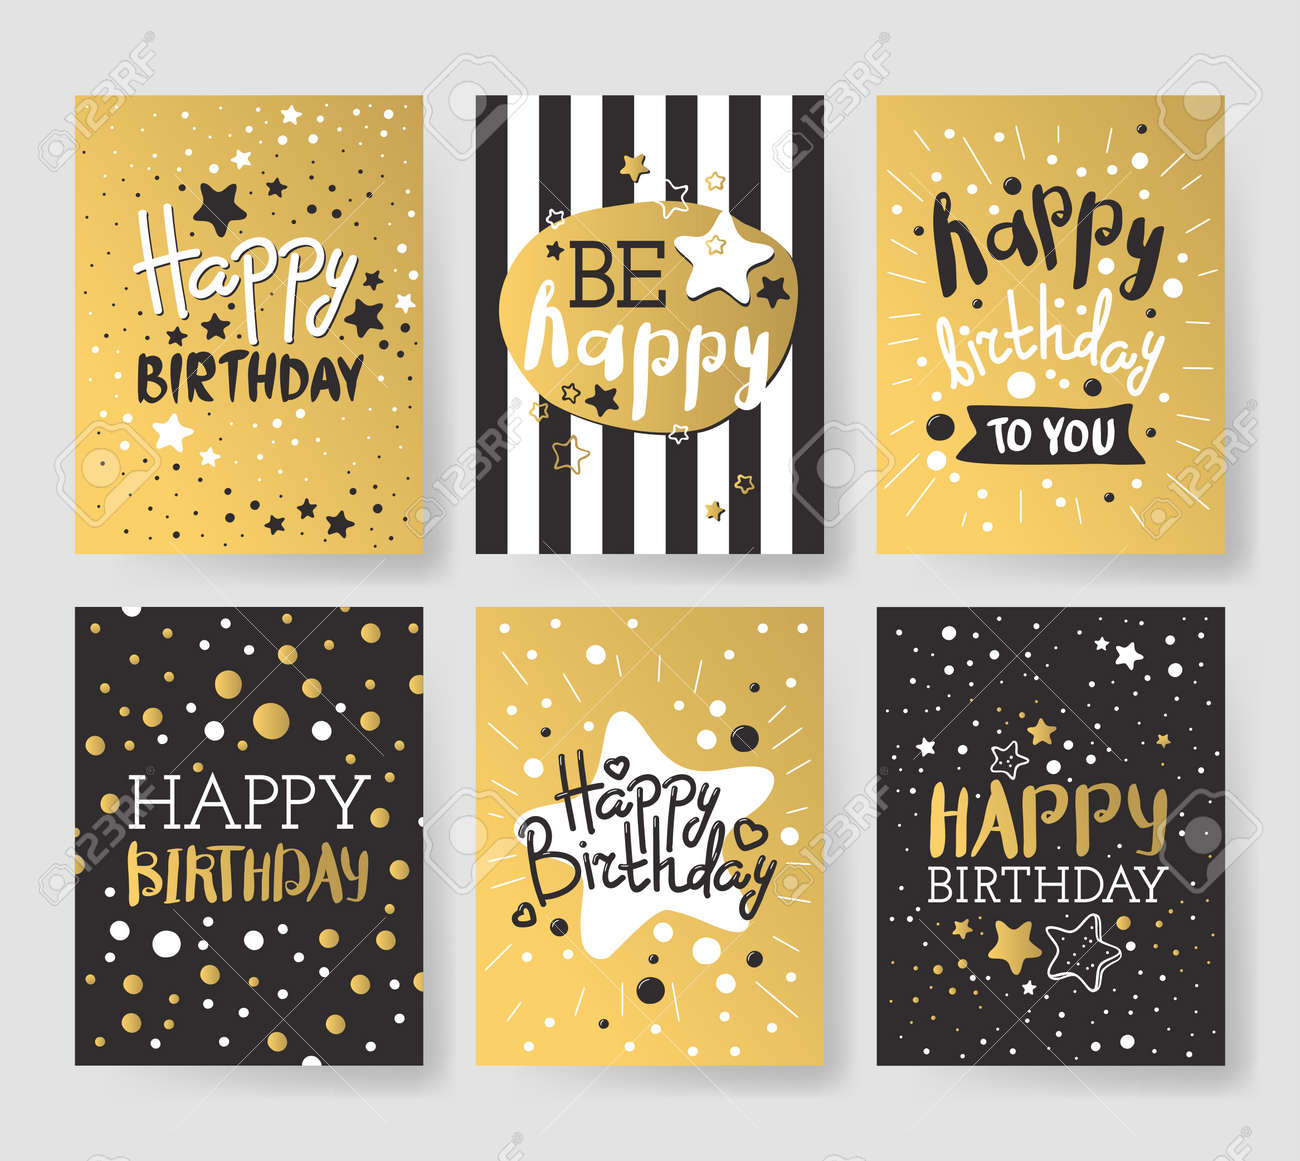 Beautiful Birthday Invitation Cards Design Gold And Black Colors Vector Greeting Card Decoration